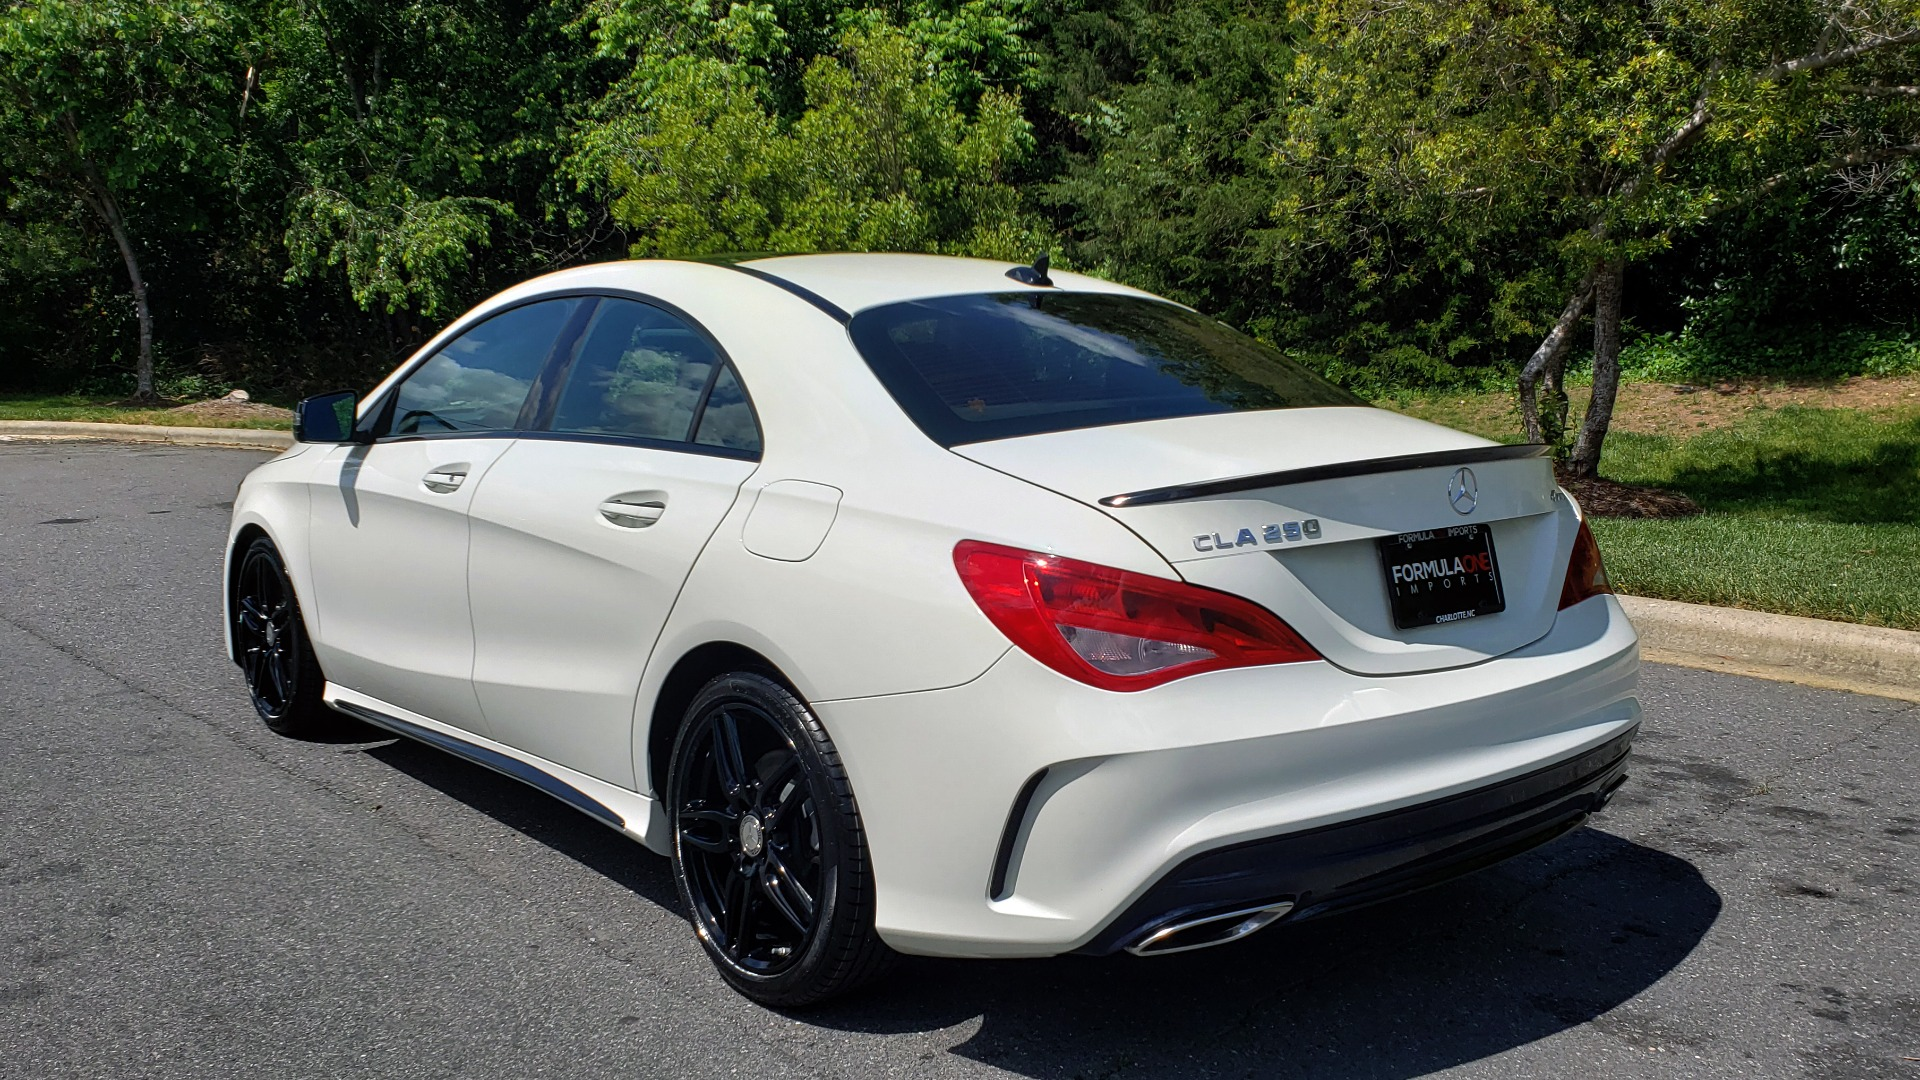 Used 2017 Mercedes-Benz CLA 250 4MATIC / SPORT / PREMIUM / MULTI MEDIA / NIGHT PKG / PANO-ROOF for sale Sold at Formula Imports in Charlotte NC 28227 3